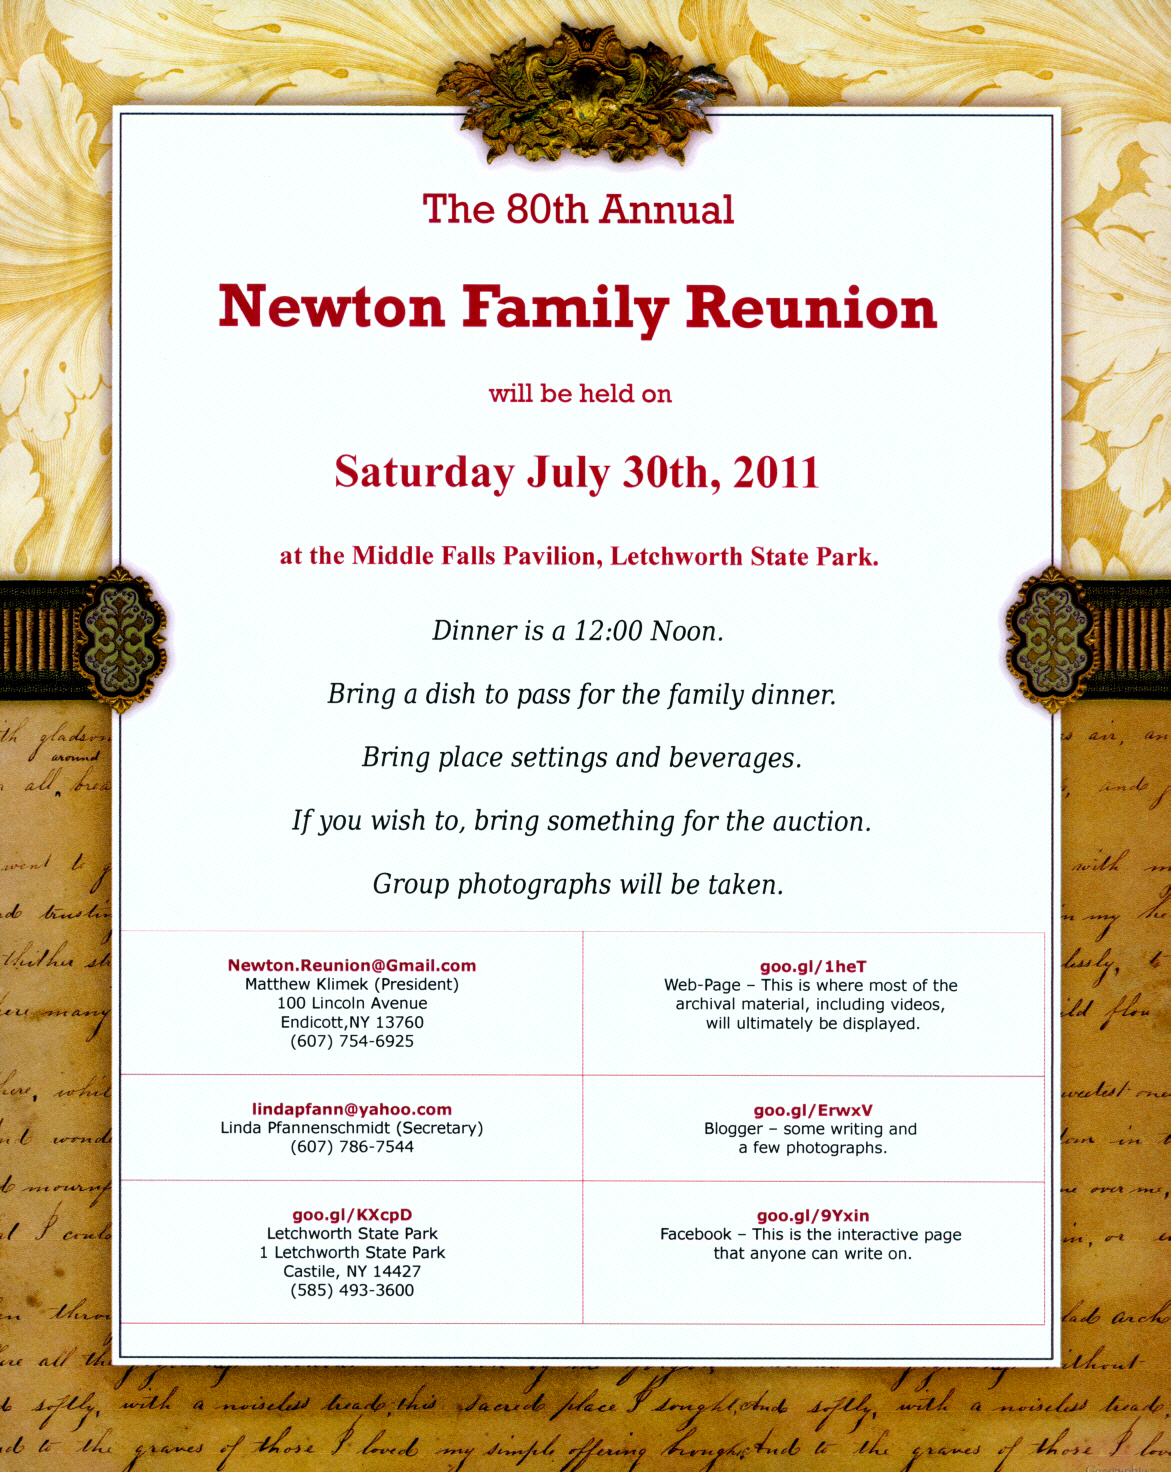 Invitations For Family Reunion Church Clerk Cover Letter Sample 2011 07 30  80th Annual Reunion Invitations  Invitations For Family Reunion